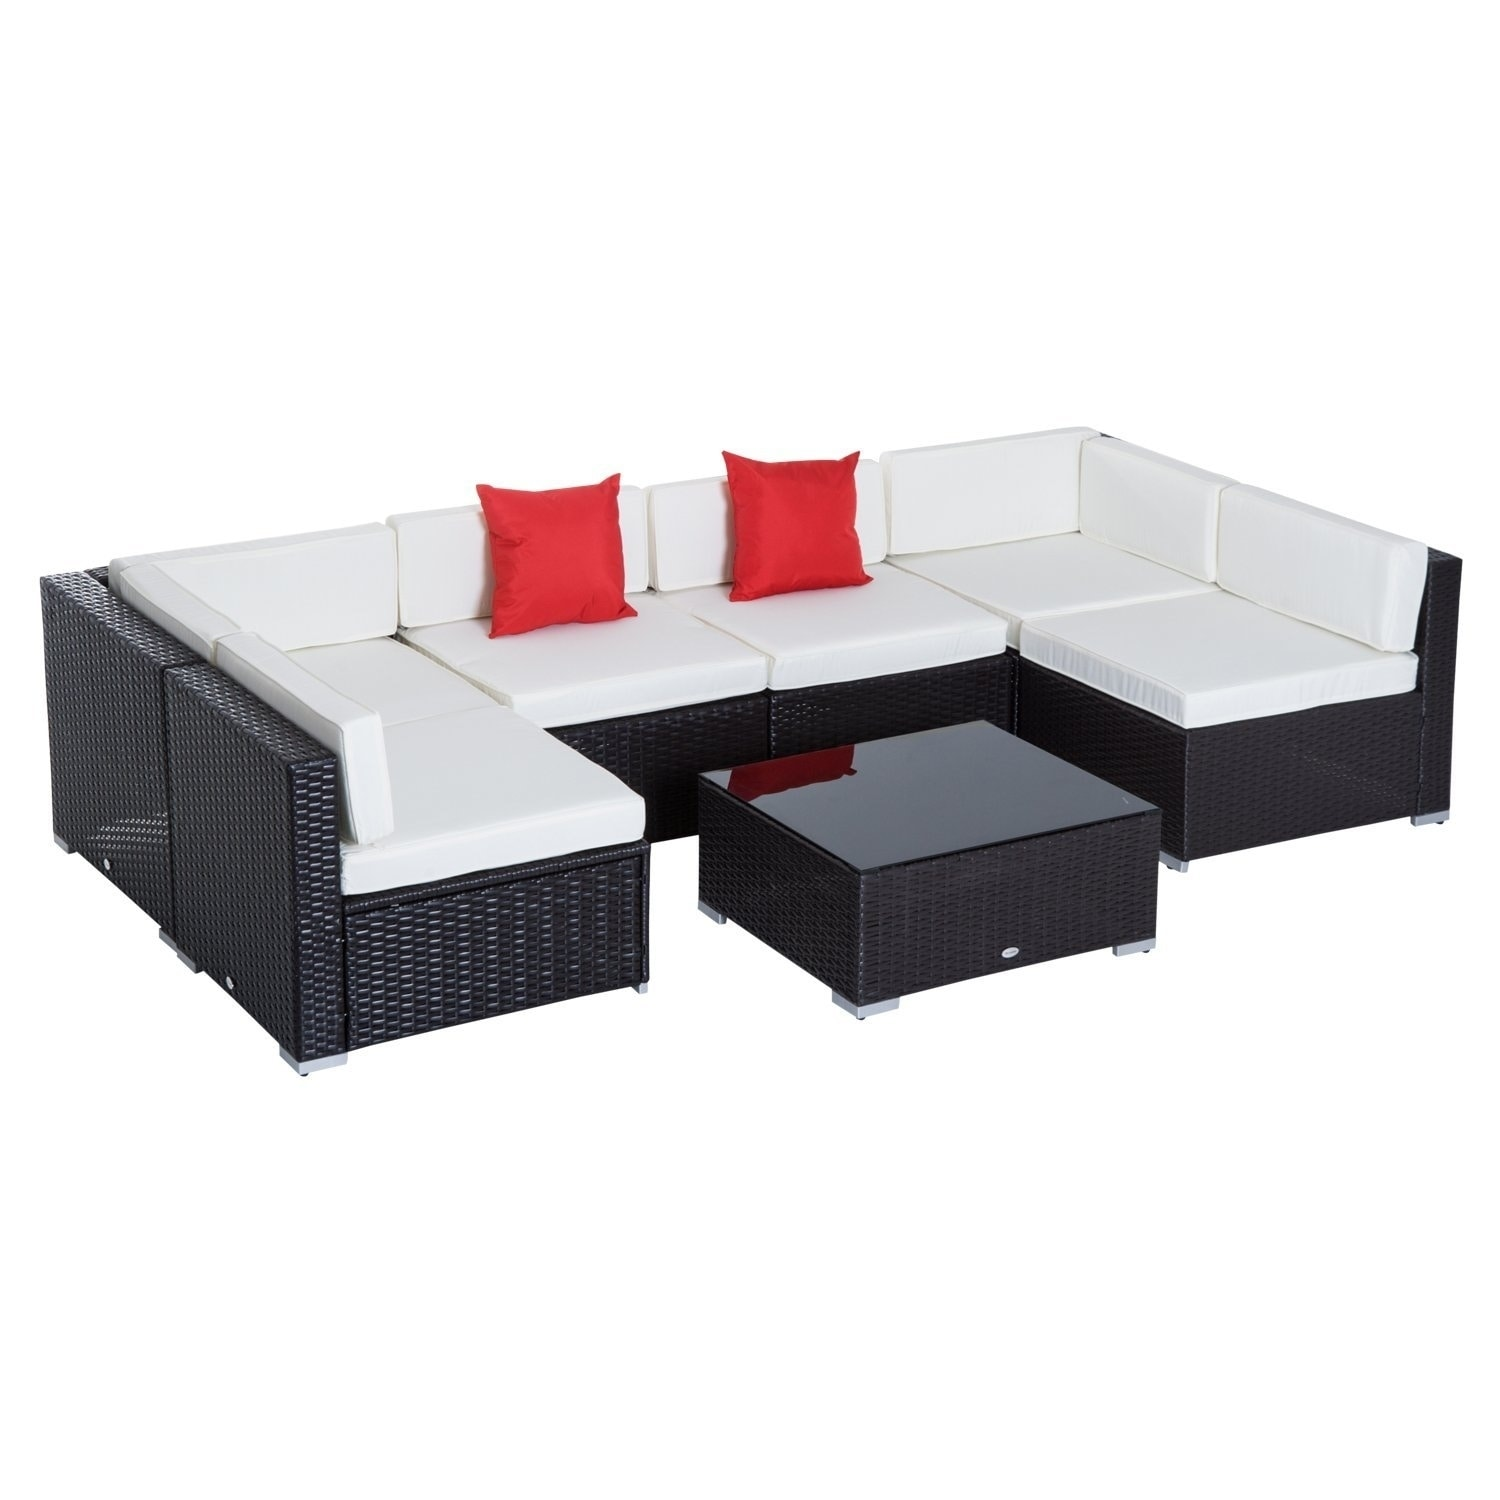 Sofa Rattan Outsunny 7 Piece Set Rattan Sofa Luxury Modular Conversation Outdoor Furniture